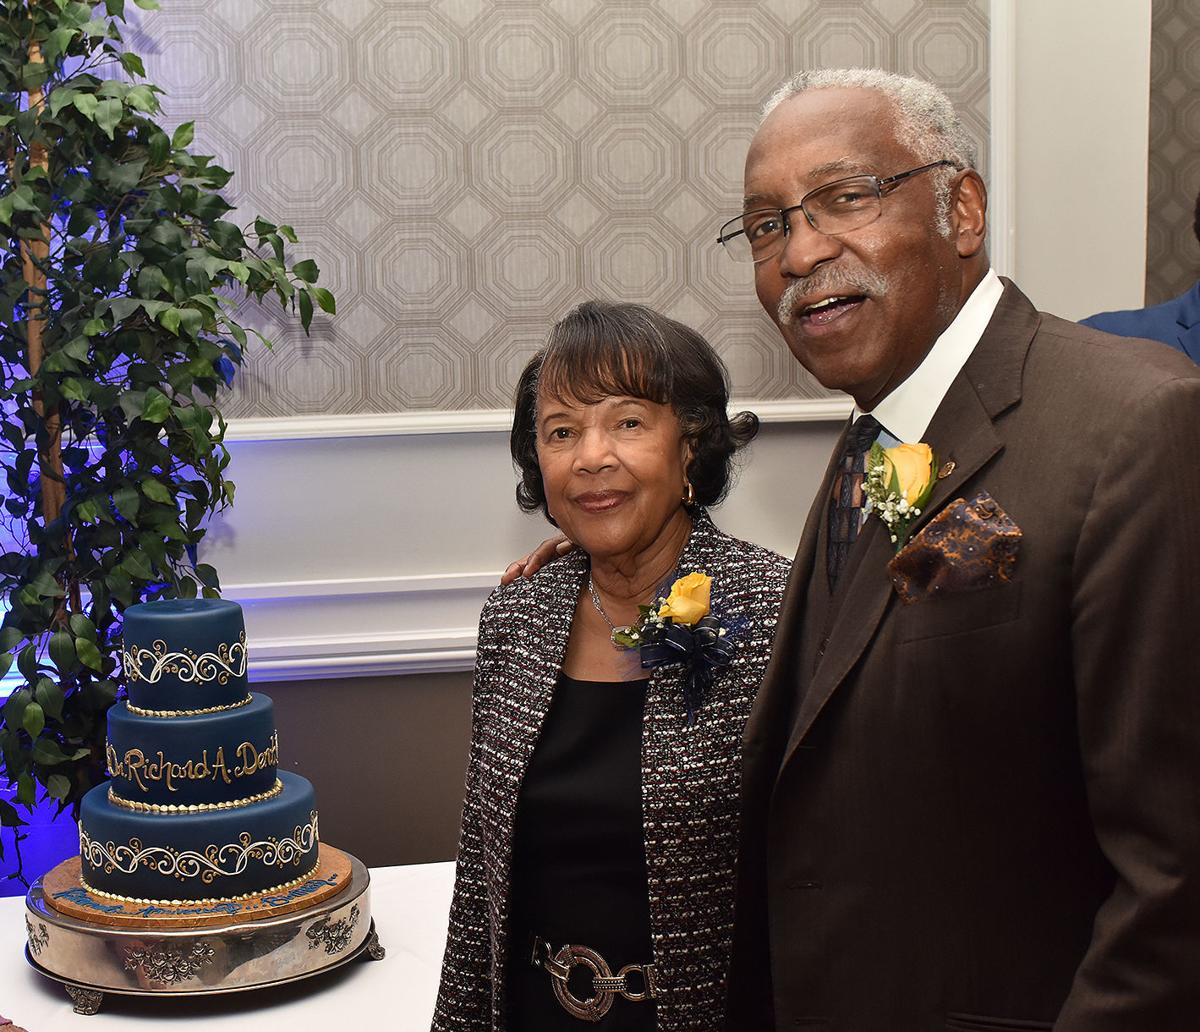 Rev. Richard Dent and his wife, Beatrice Dent.